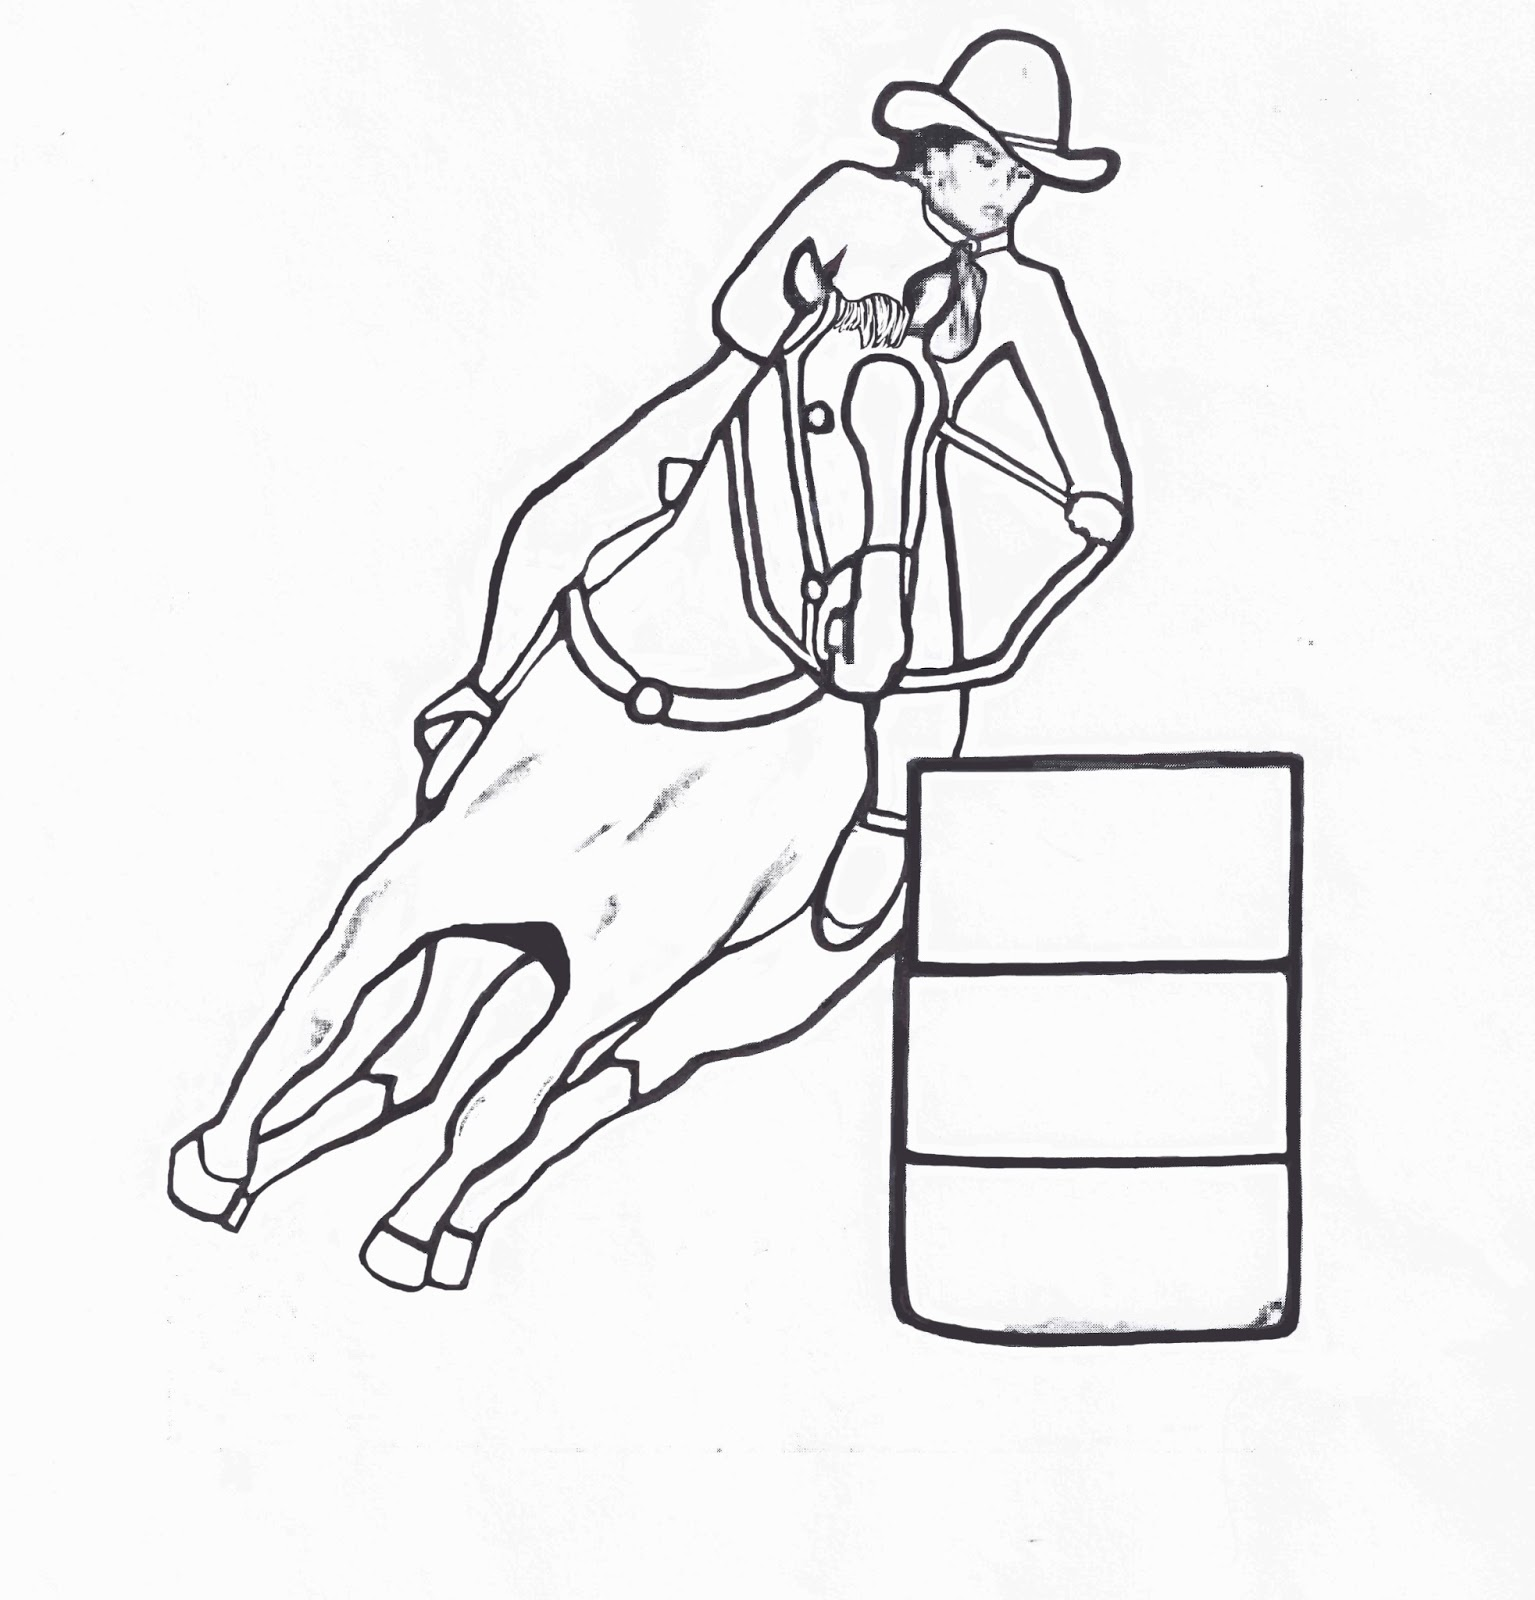 barrel racing coloring pages - photo#3